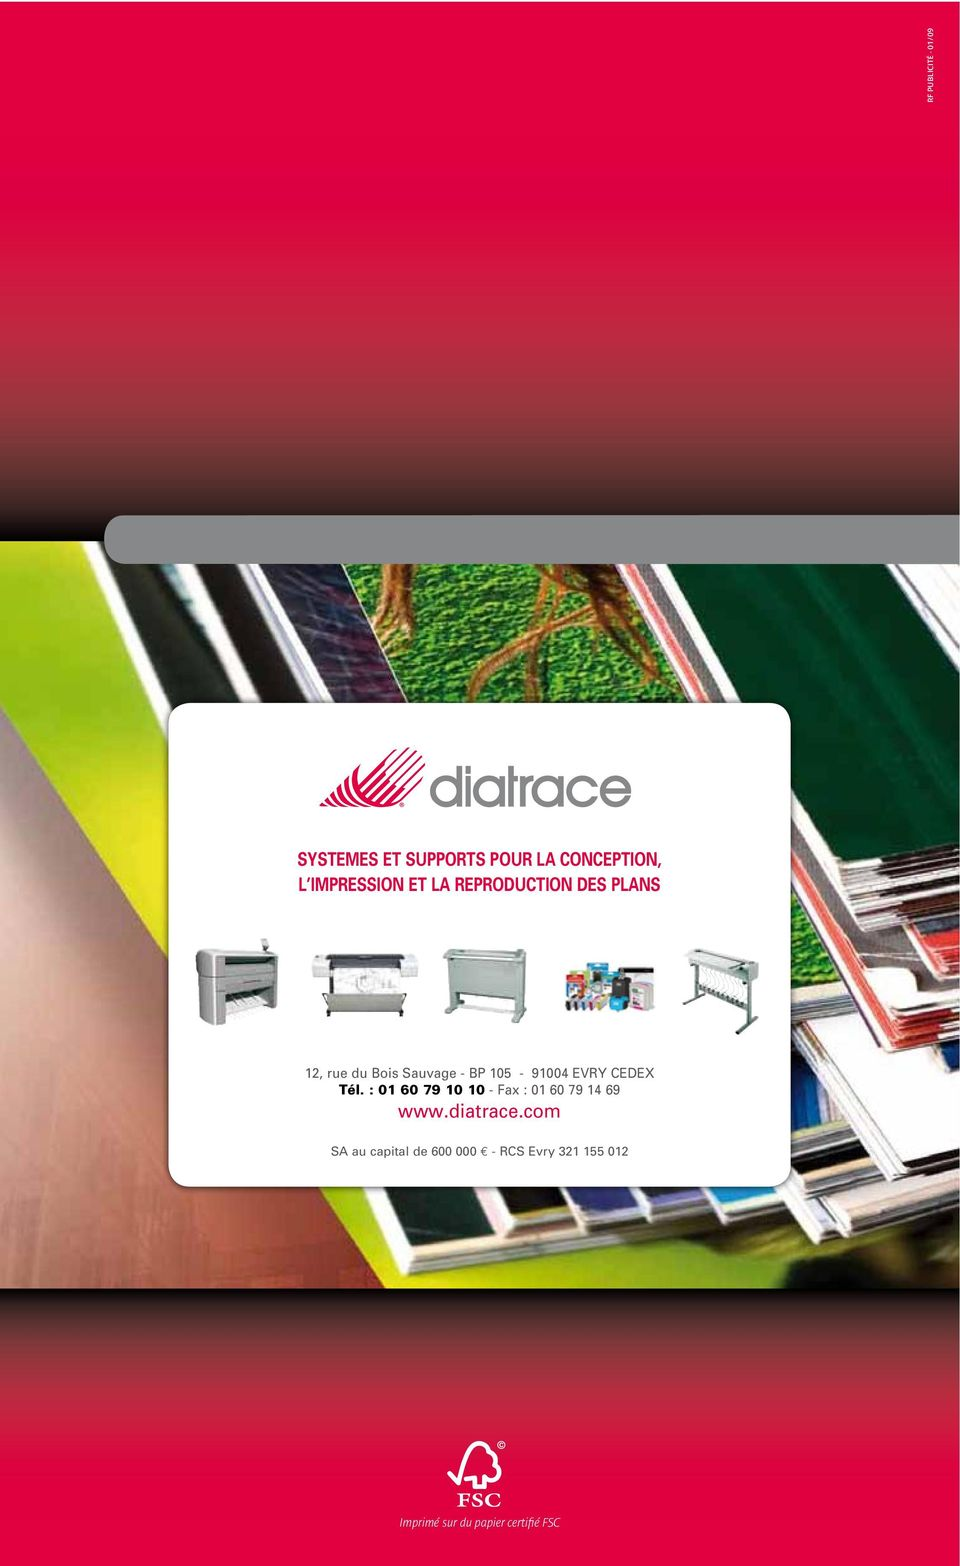 CEDEX Tél. : 01 60 79 10 10 - Fax : 01 60 79 14 69 www.diatrace.